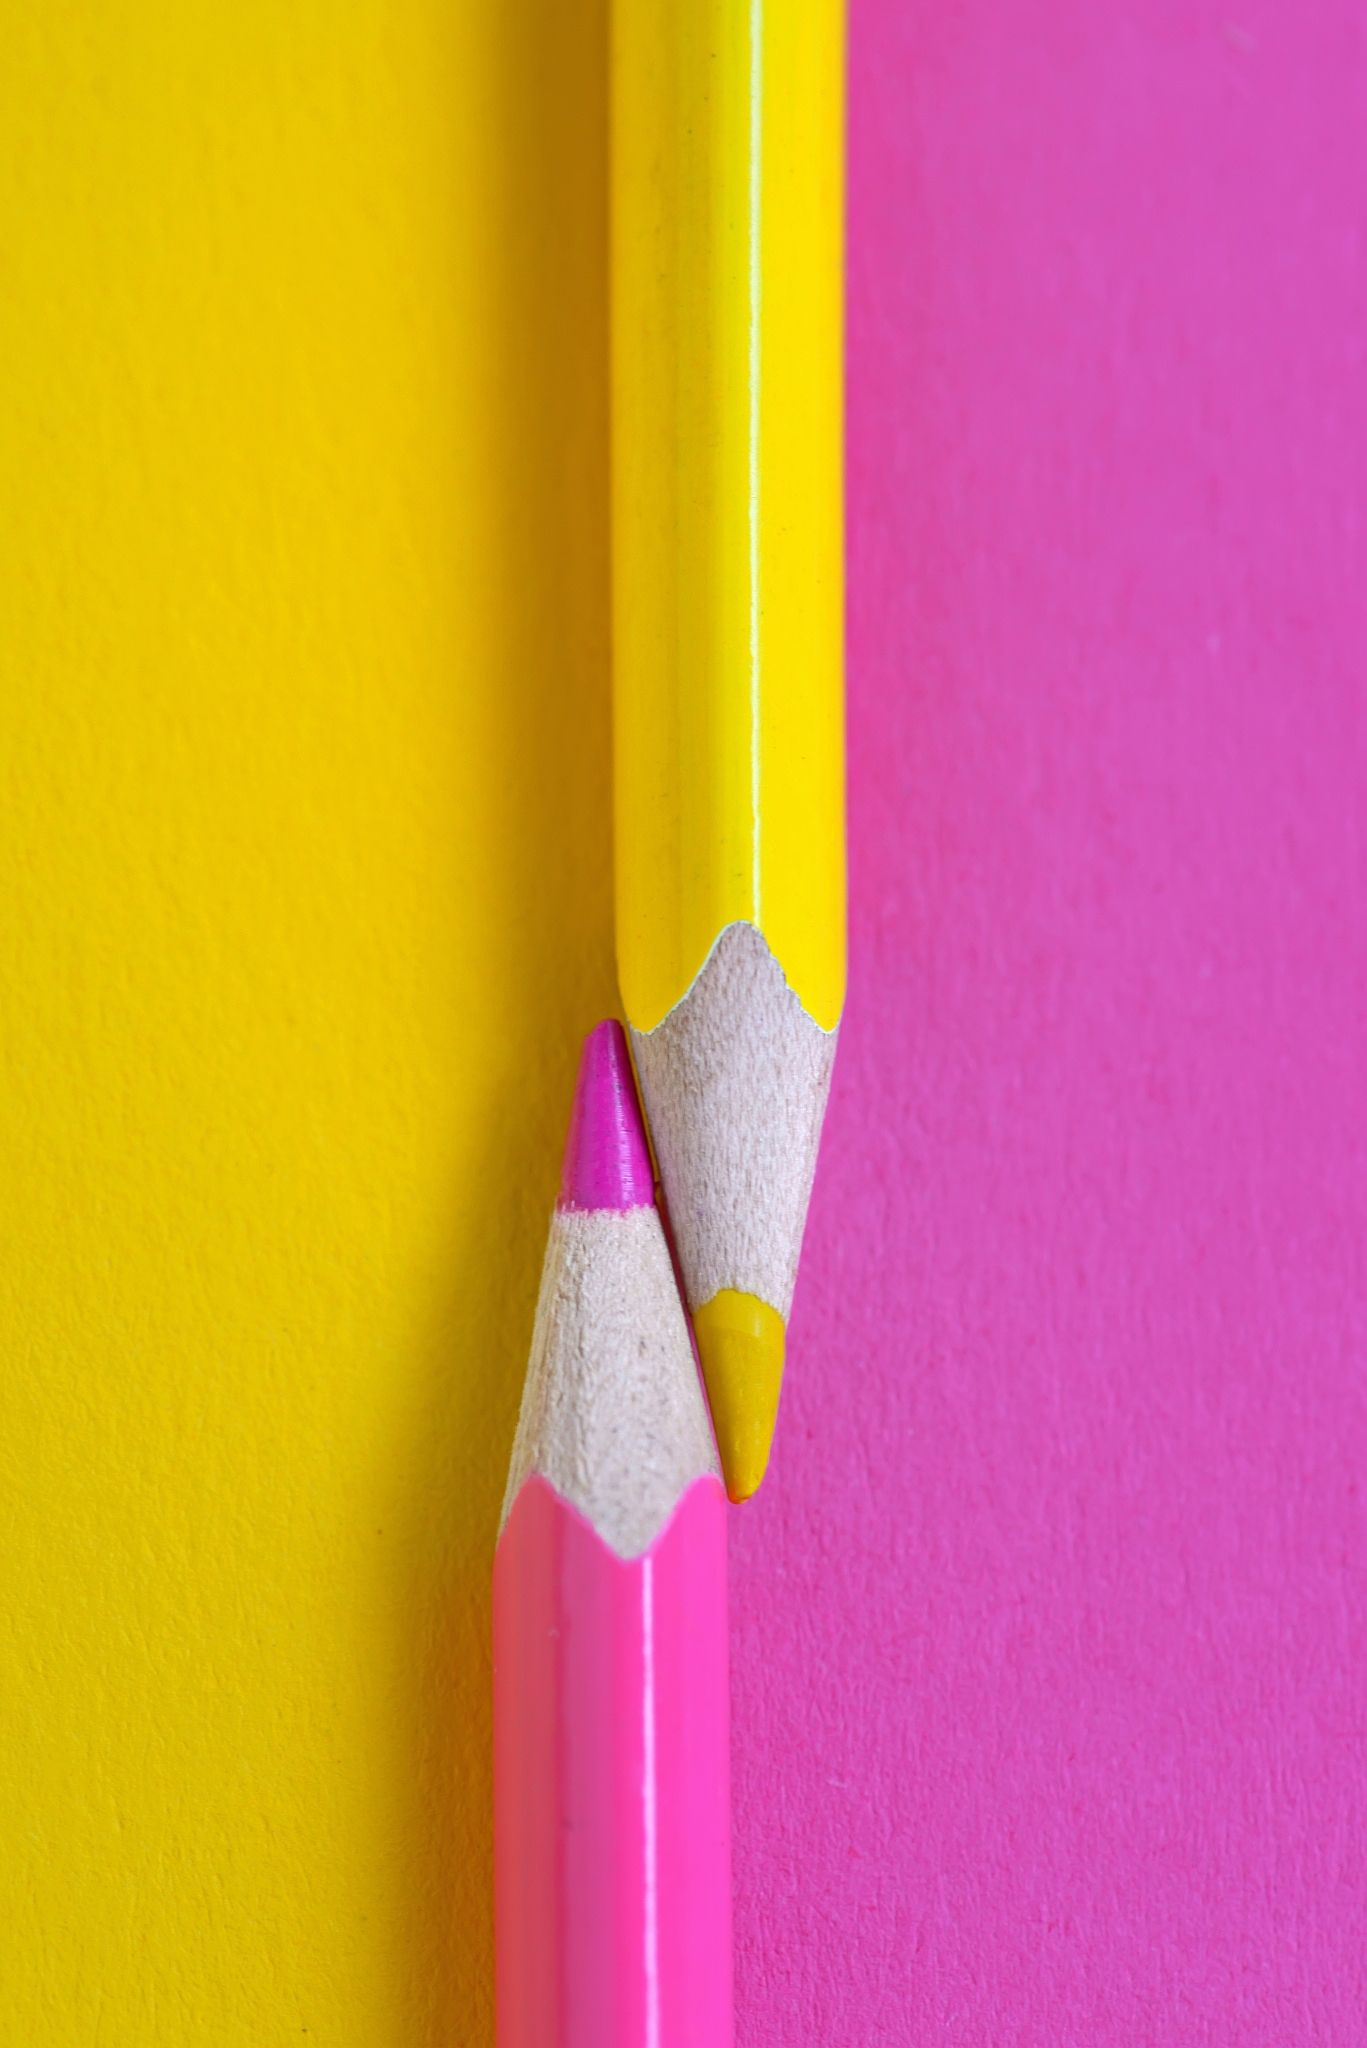 Yellow And Pink Crayons Pink Crayon Paper Background Minimalist Photography